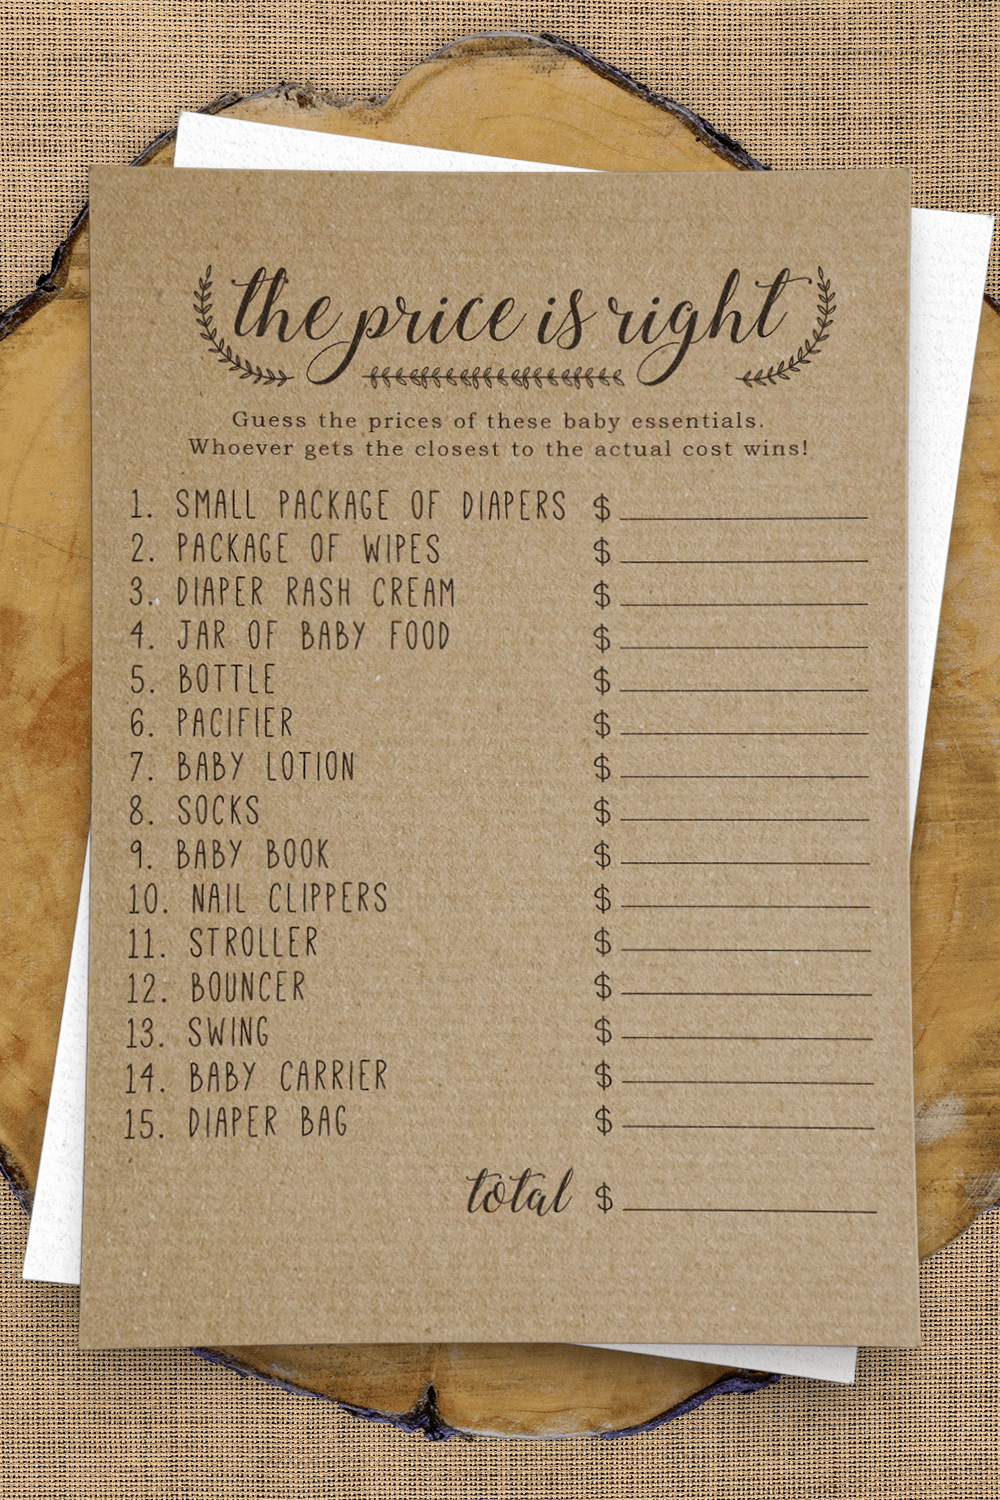 Price Is Right Answer Key : price, right, answer, Price, Right, Shower, Game,, Right,, Printable, Classy, Shower,, Games,